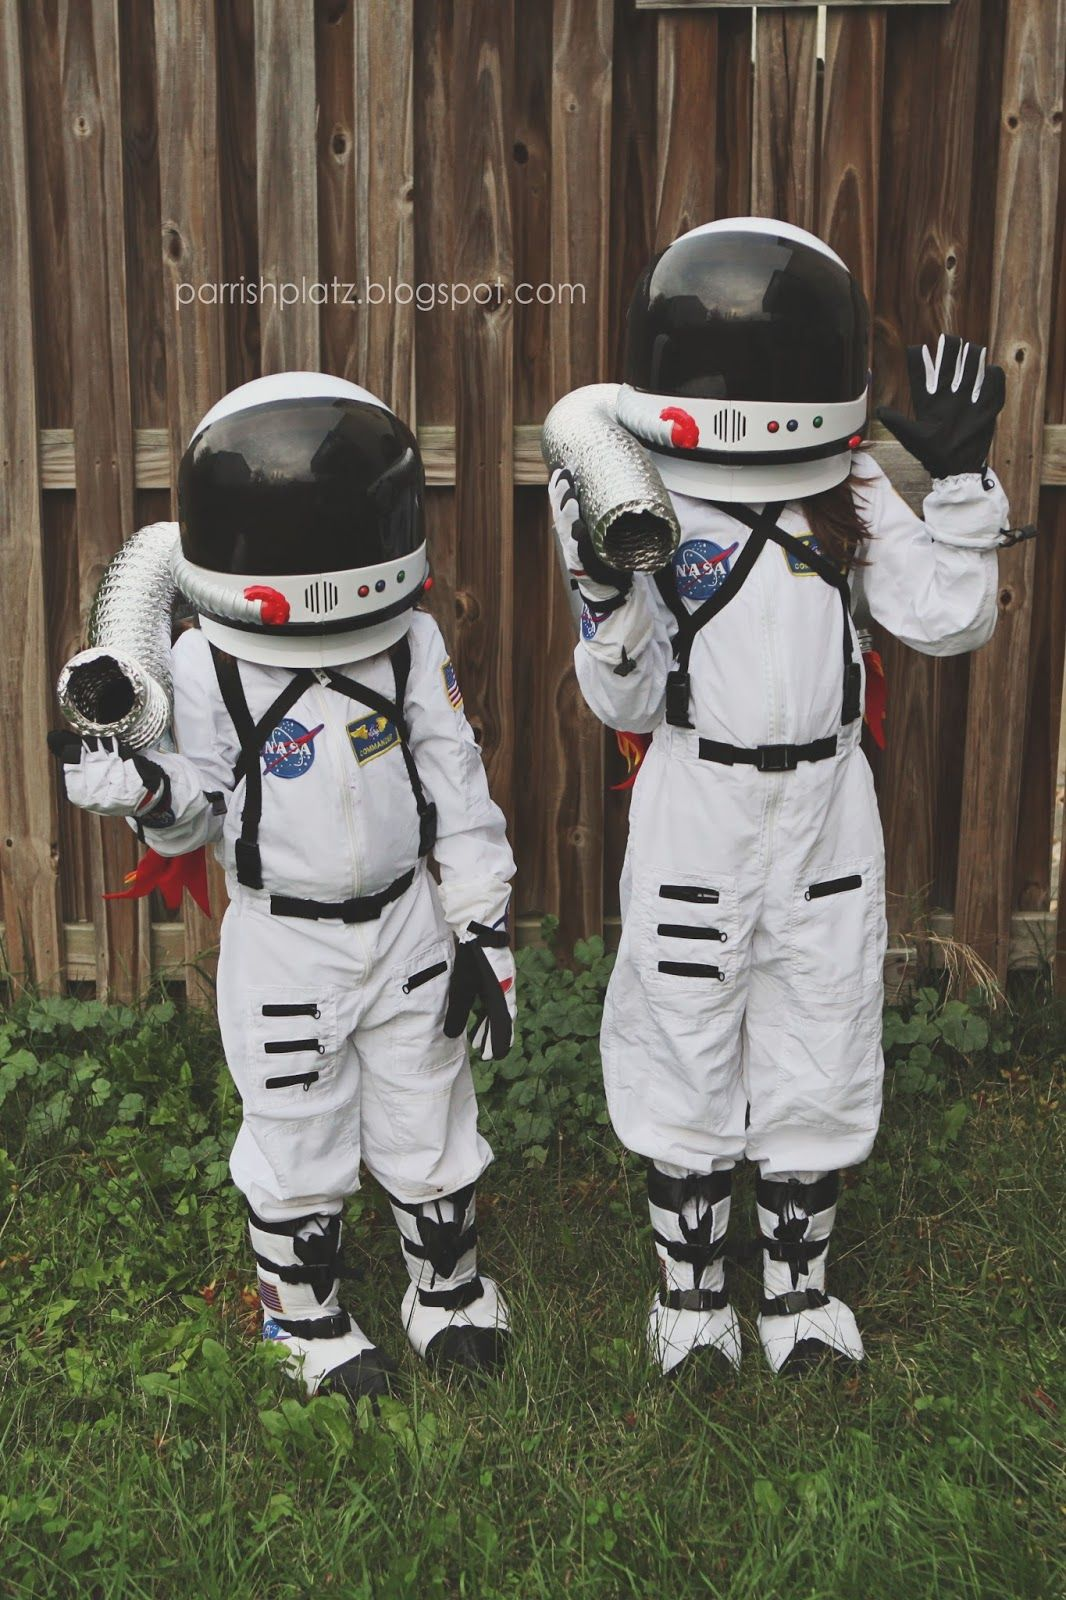 the 25 best kids astronaut costume ideas on pinterest astronaut costume diy kids astronaut. Black Bedroom Furniture Sets. Home Design Ideas